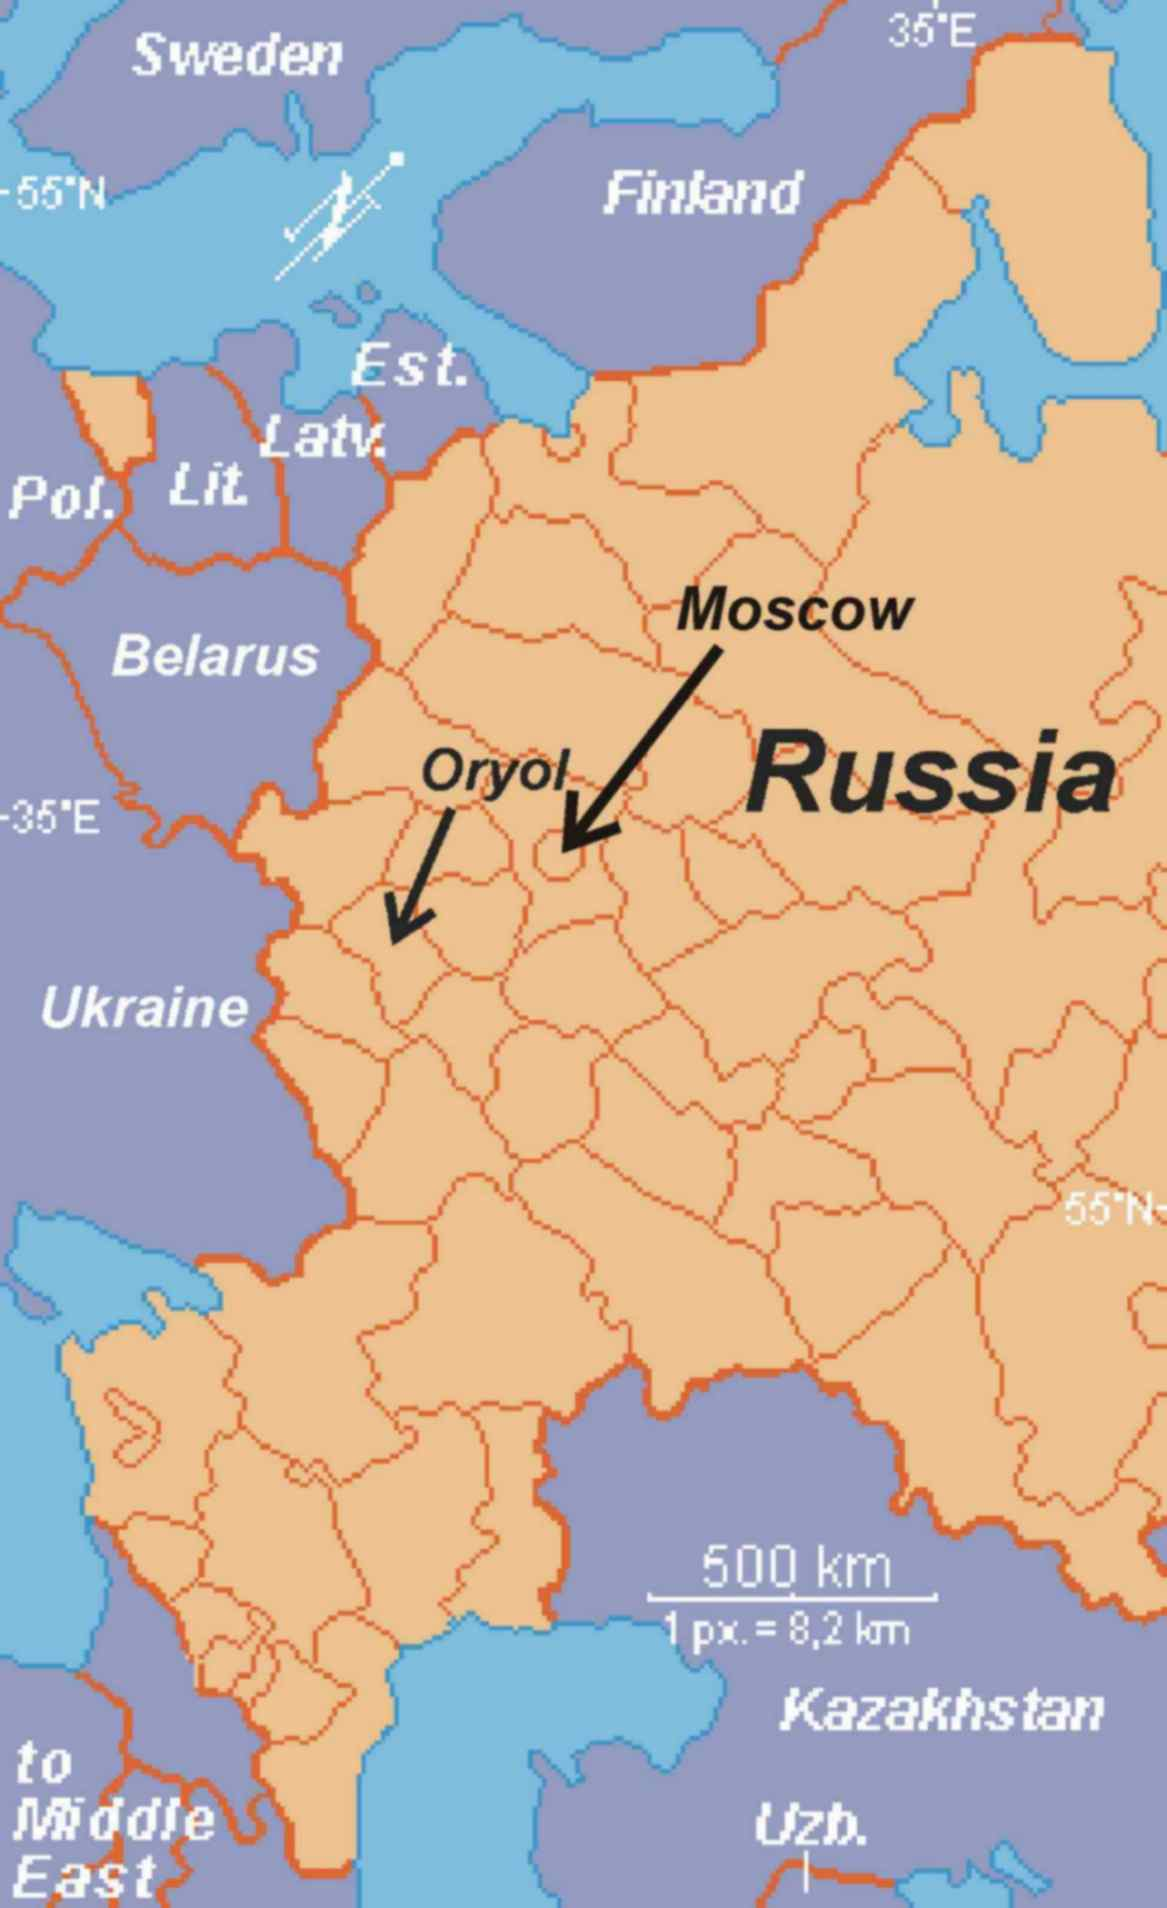 Oryol Maps & Facts :: Don and Ruth Ossewaarde - Missionaries to Russia